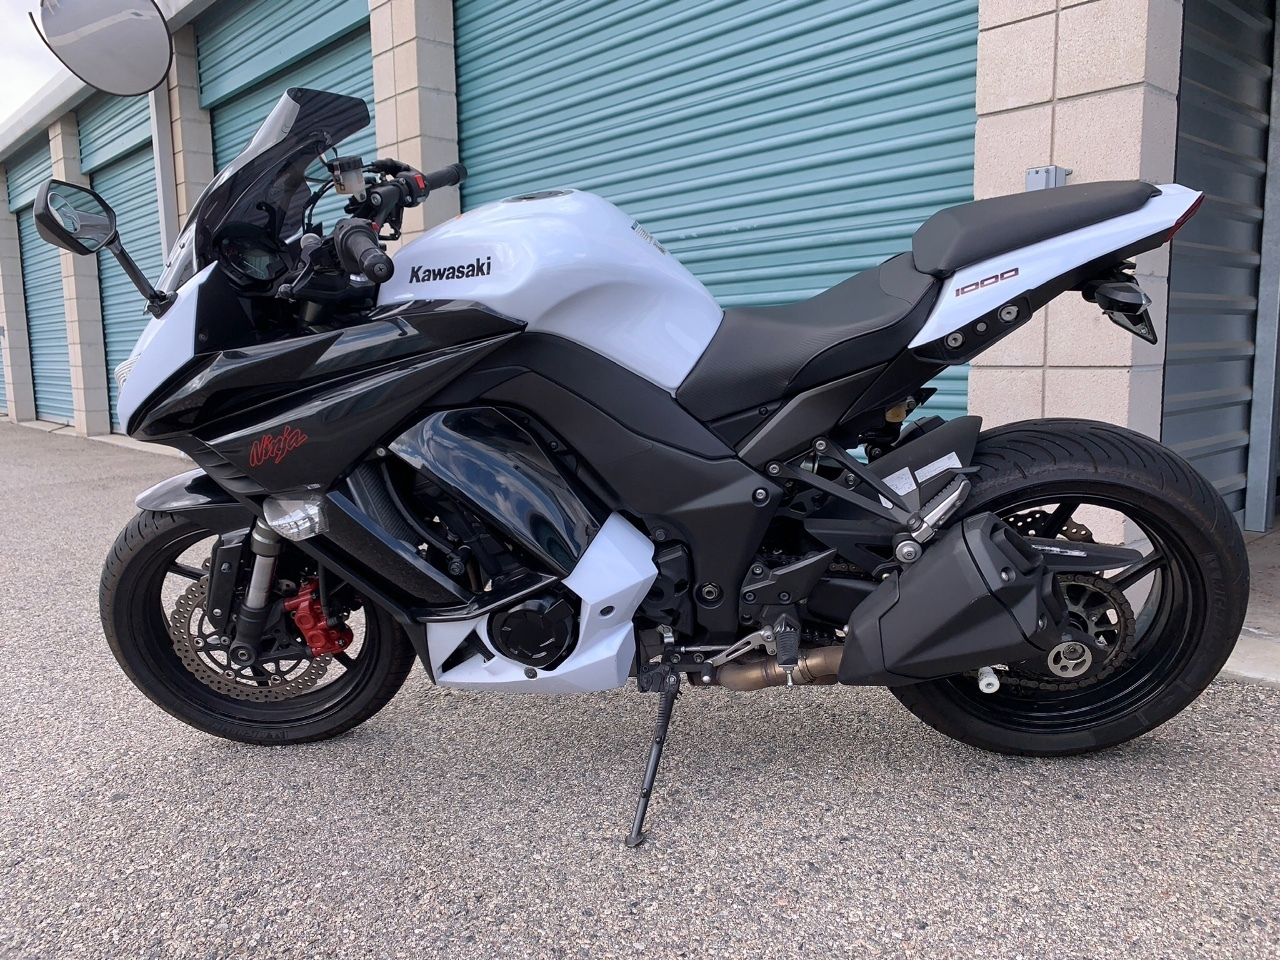 California 19 Kawasaki Ninja 1000 Near Me Cycle Trader